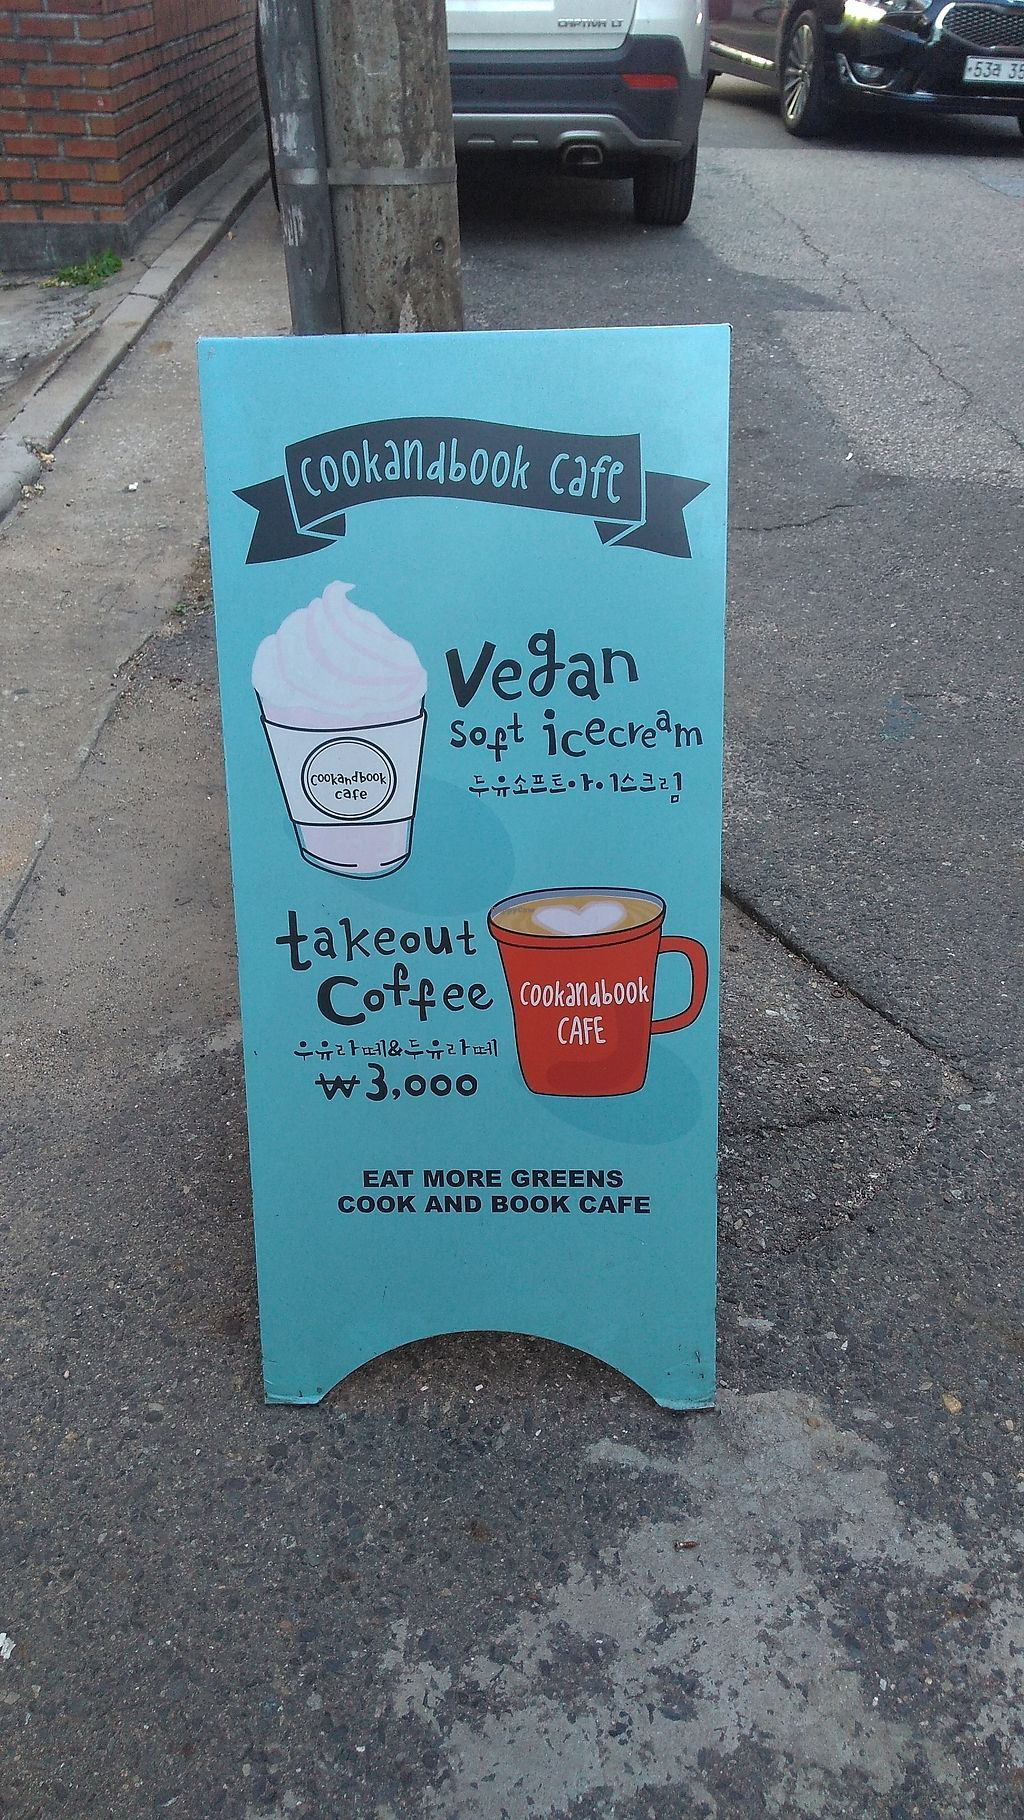 """Photo of Cook and Book - 쿡앤북  by <a href=""""/members/profile/egietz"""">egietz</a> <br/>Vegan soft serve ice cream and coffee! <br/> November 1, 2017  - <a href='/contact/abuse/image/44022/320631'>Report</a>"""